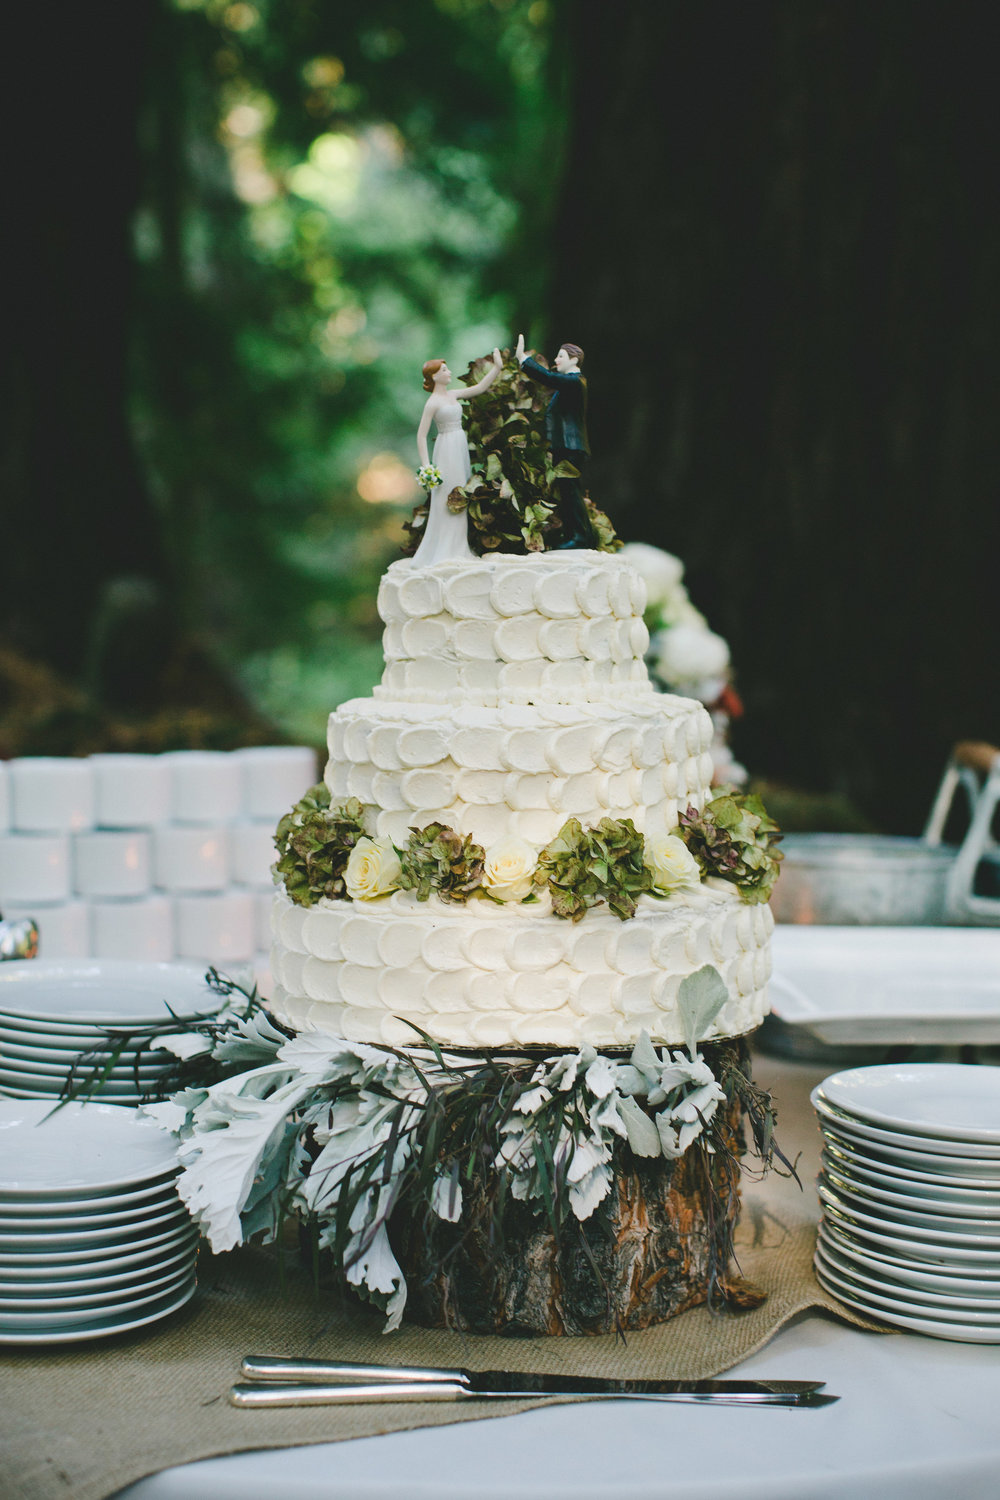 Wedding_Cake_Chocolate_Espresso_Cake_Golden_Yellow_Cake_Vanilla_Buttercream_Frosting_Dessert_Fiend.jpg